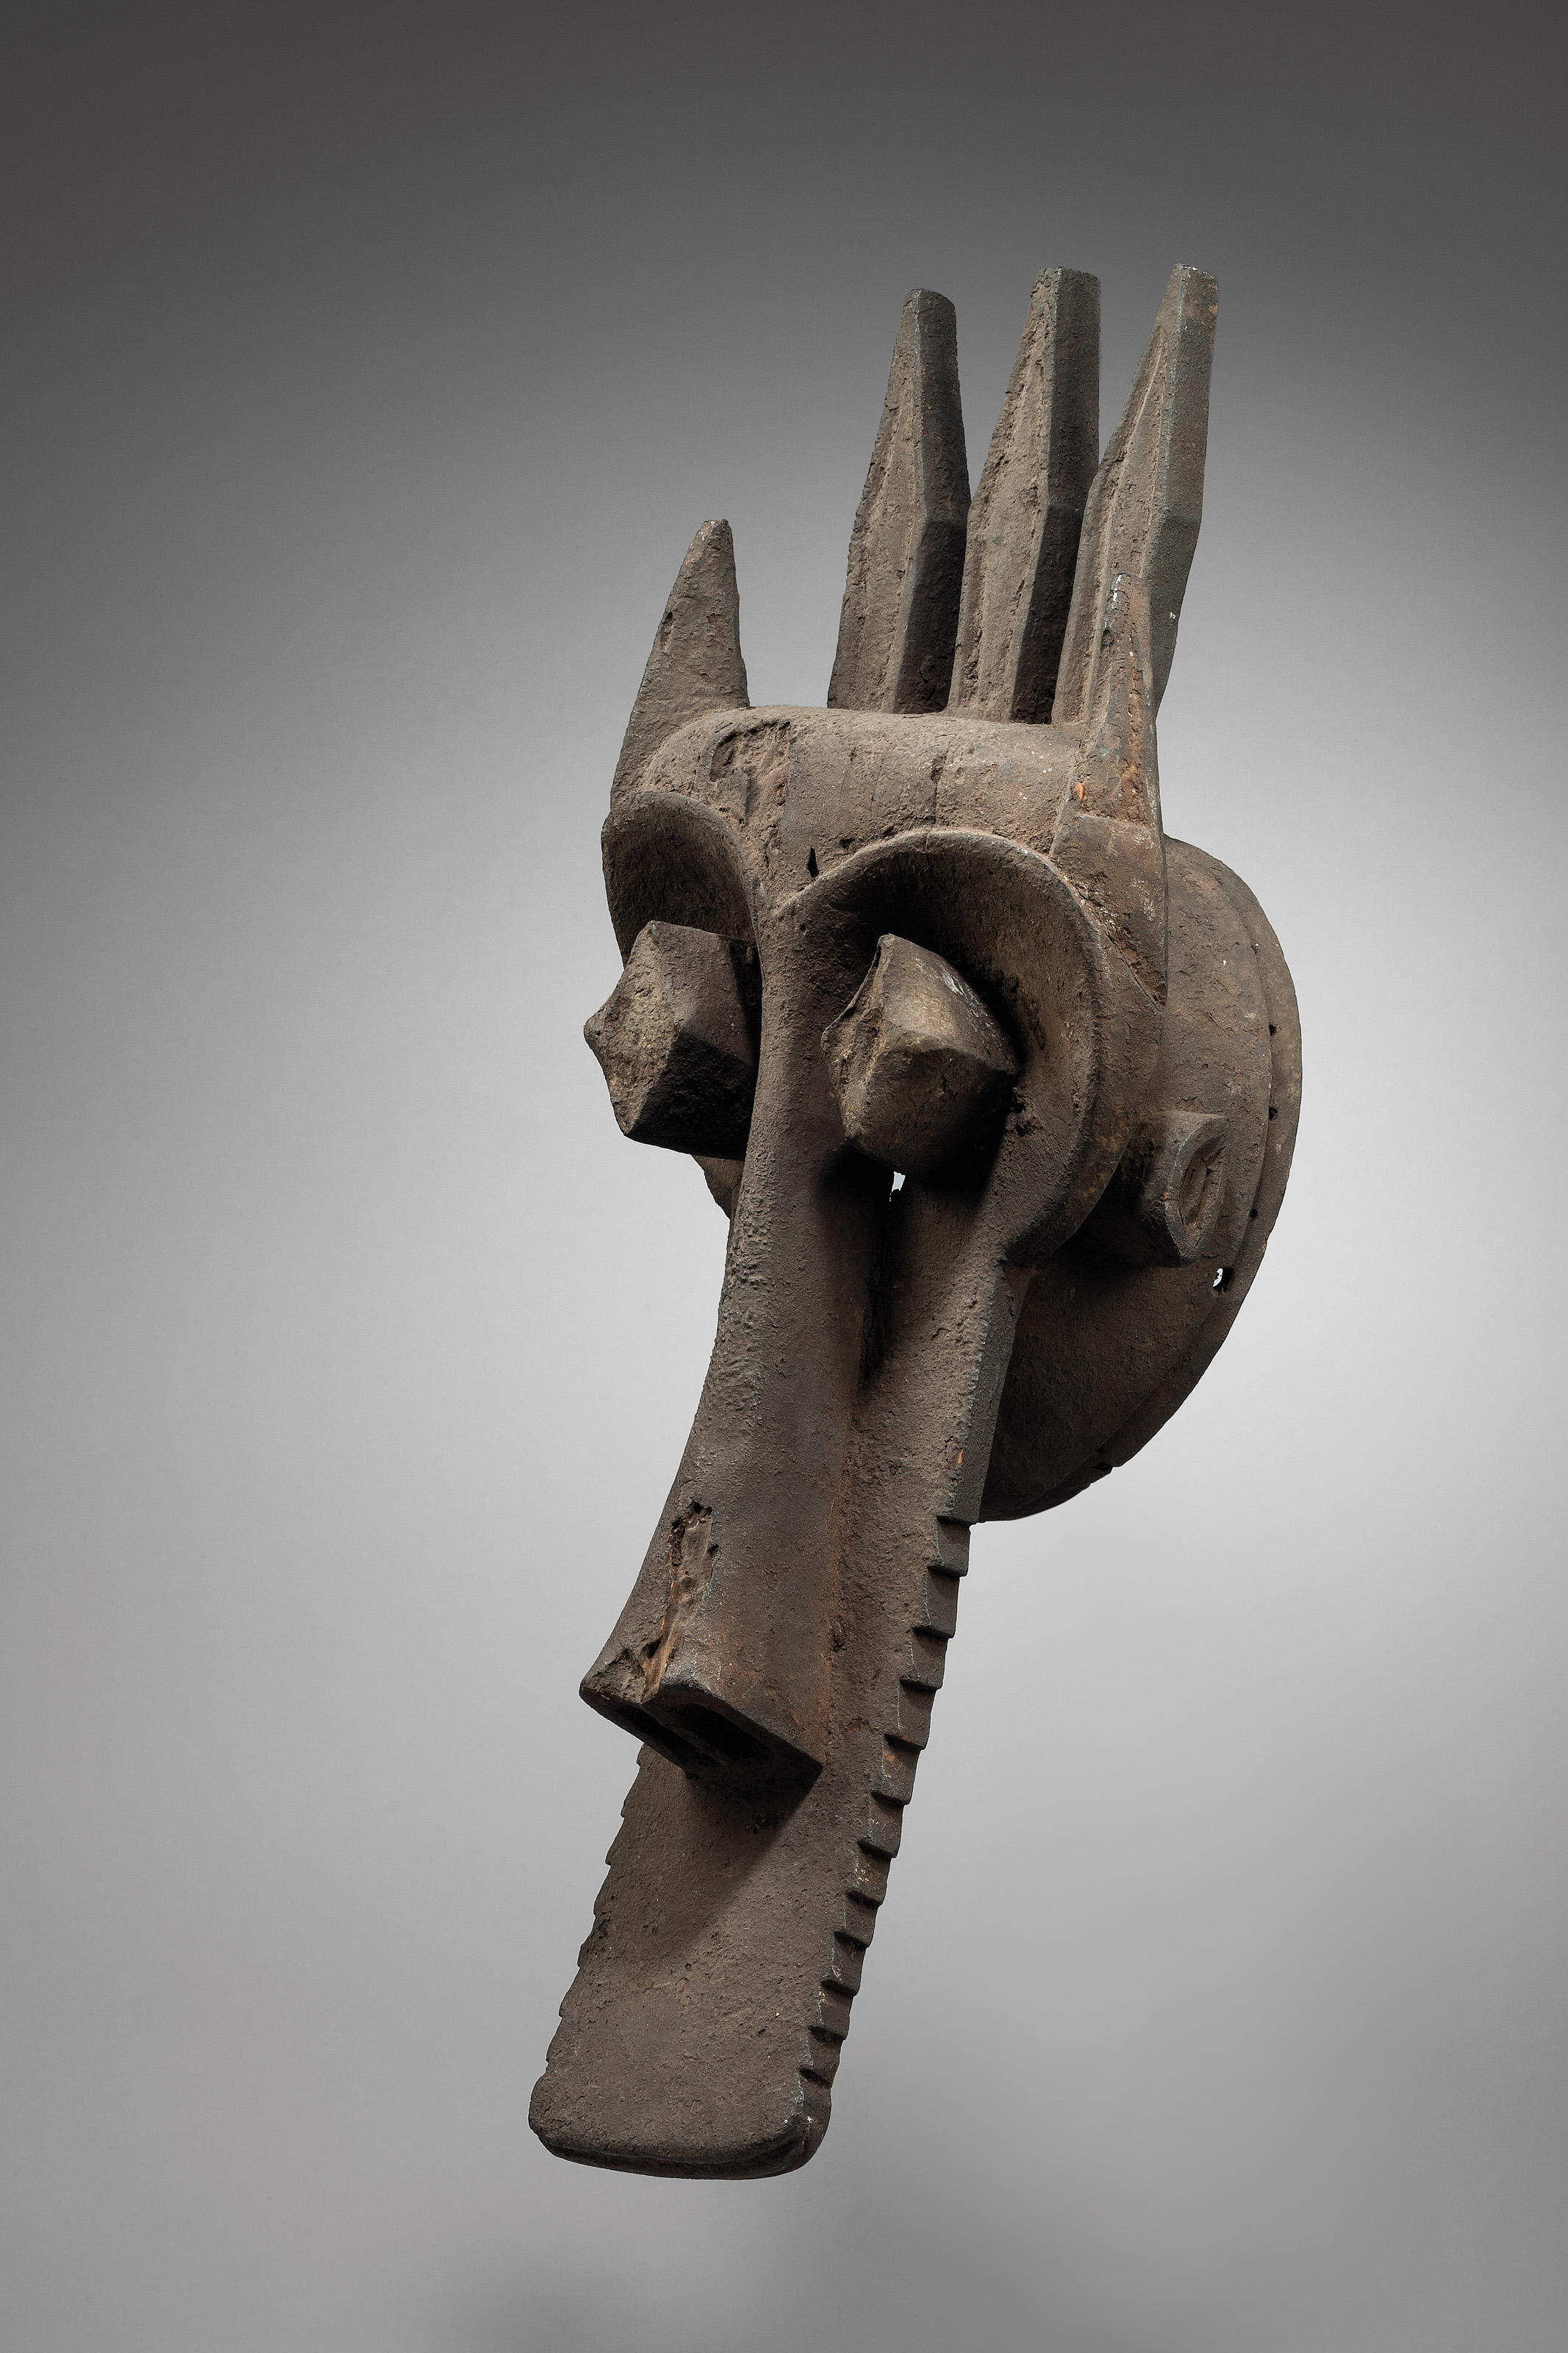 MASQUE IJO Ijaw mask